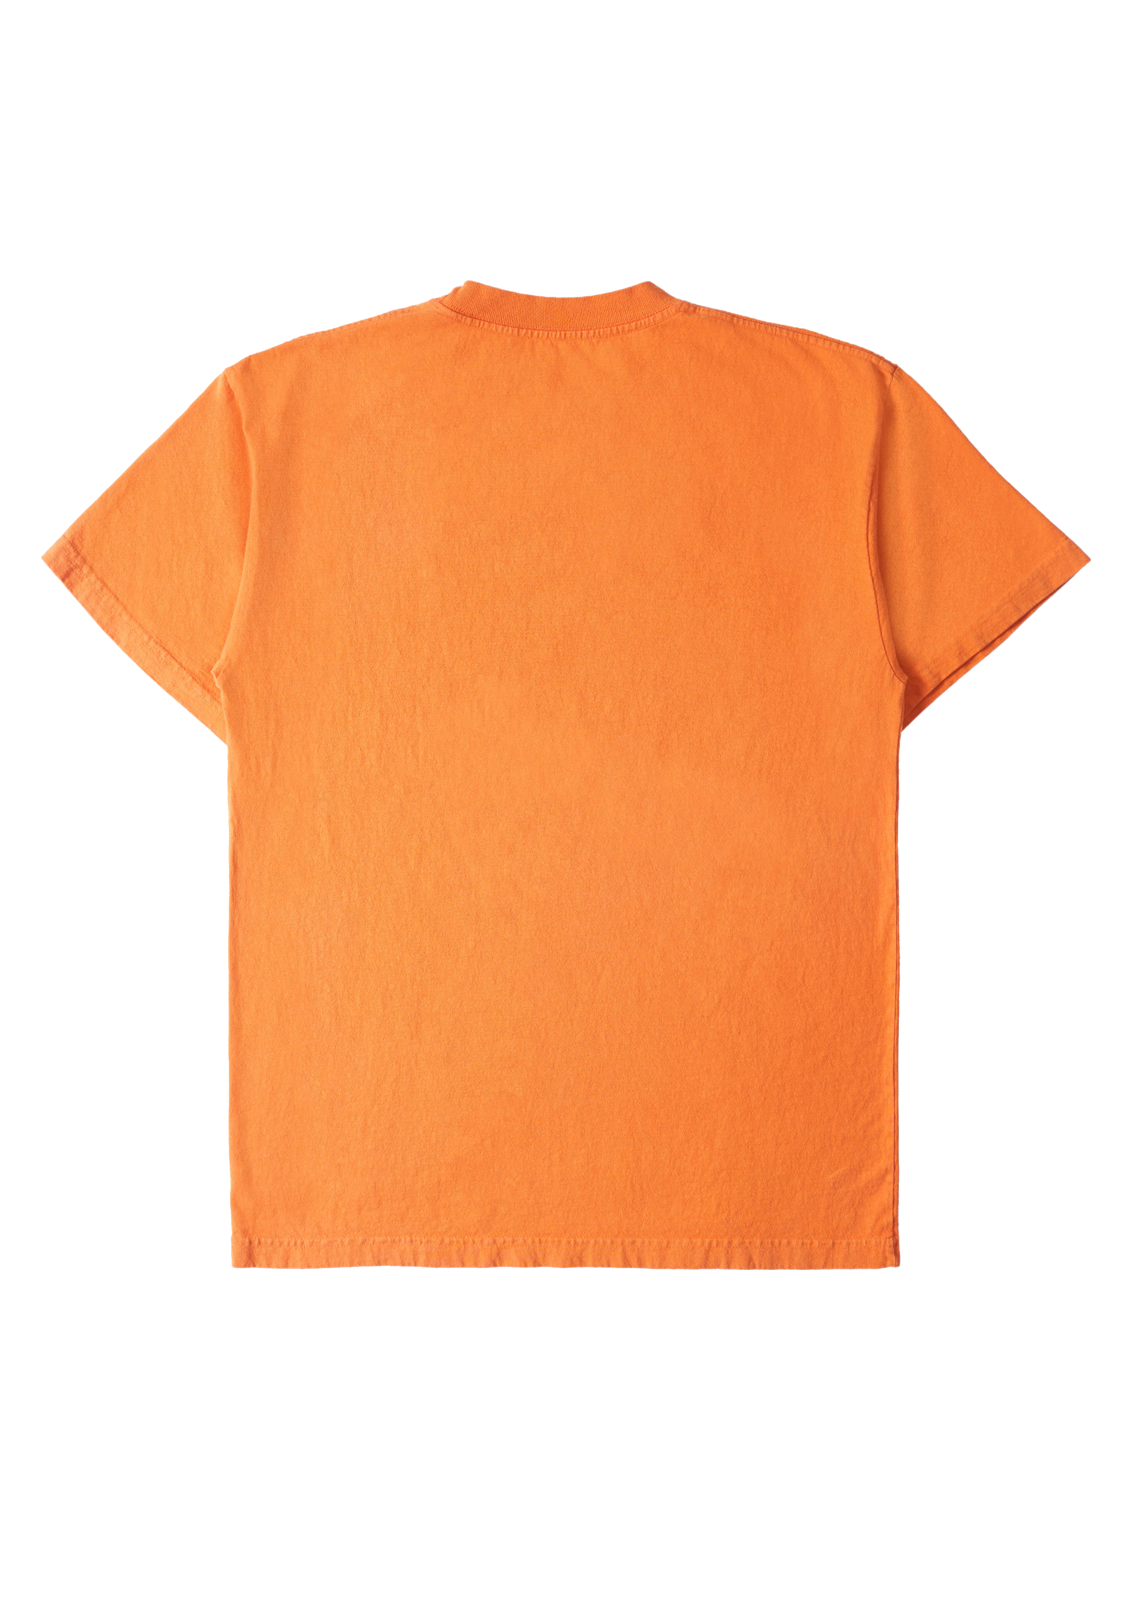 Aoneura T-Shirt - Orange